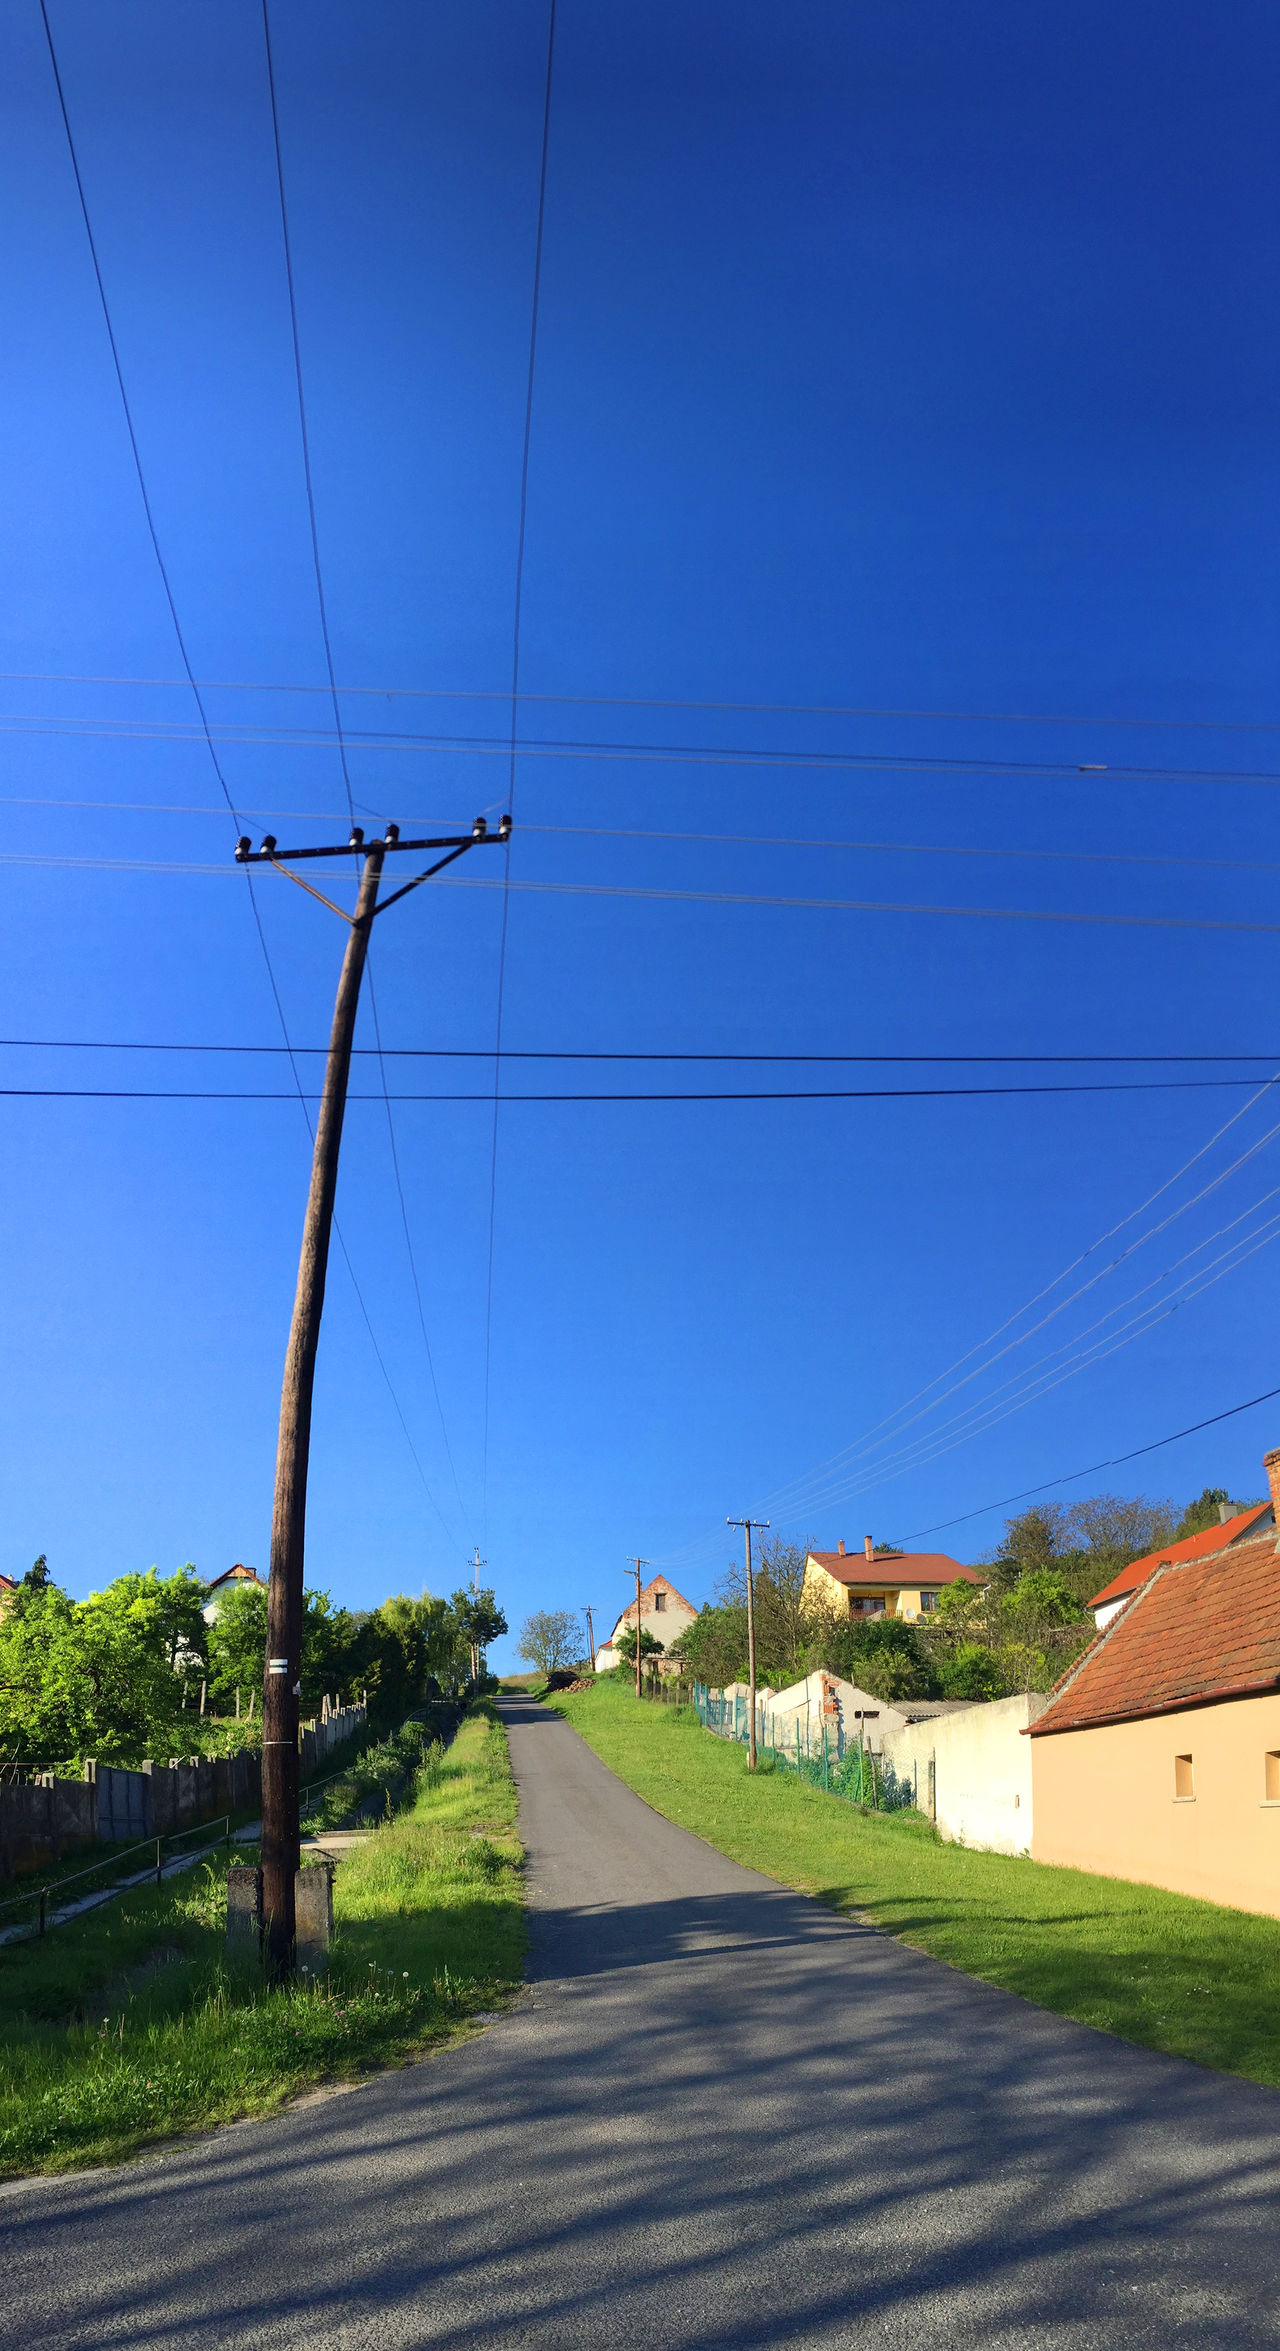 Blue Built Structure Cable Clear Sky Day Diminishing Perspective Electricity  Electricity Pylon Empty Long No People Outdoors Power Cable Power Line  Power Supply Road Sky Steep Streetphotography The Way Forward Vanishing Point Village